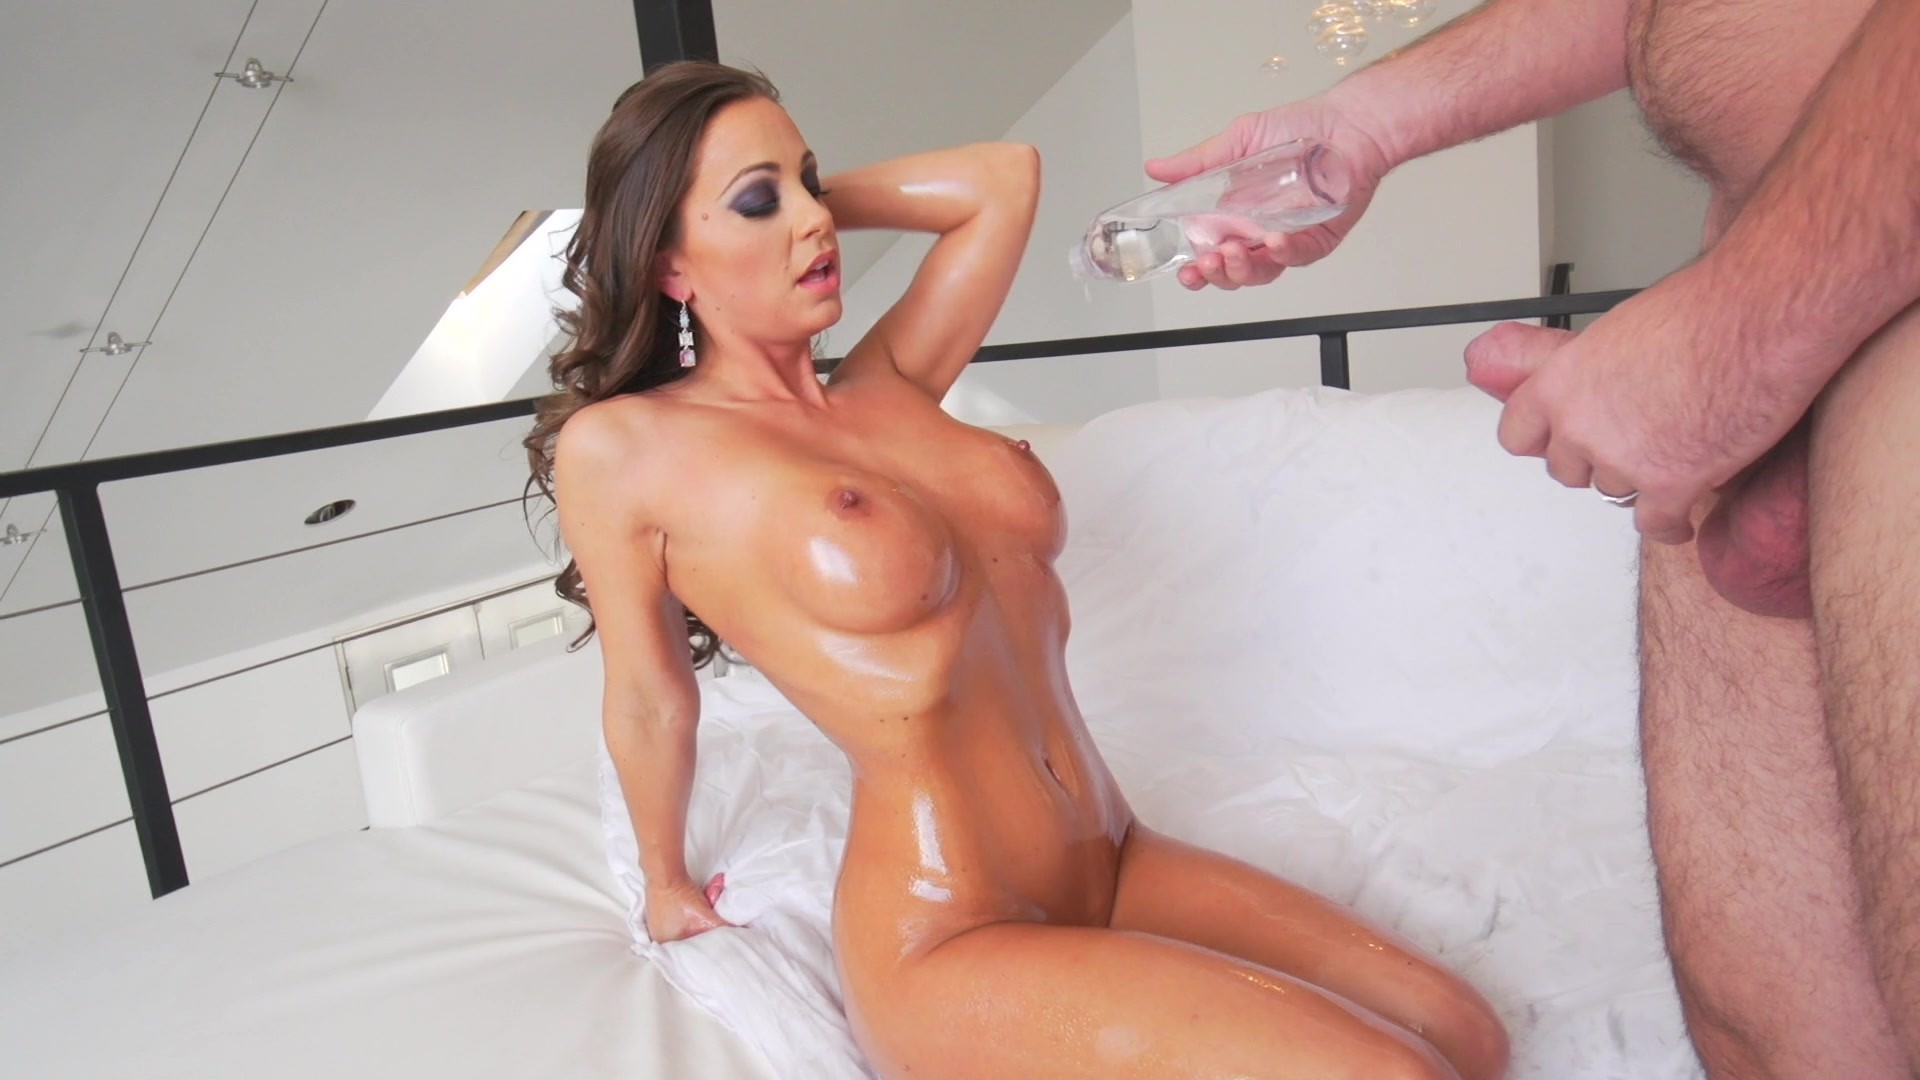 Oil Overload 14 Streaming Or Download Video On Demand -7691